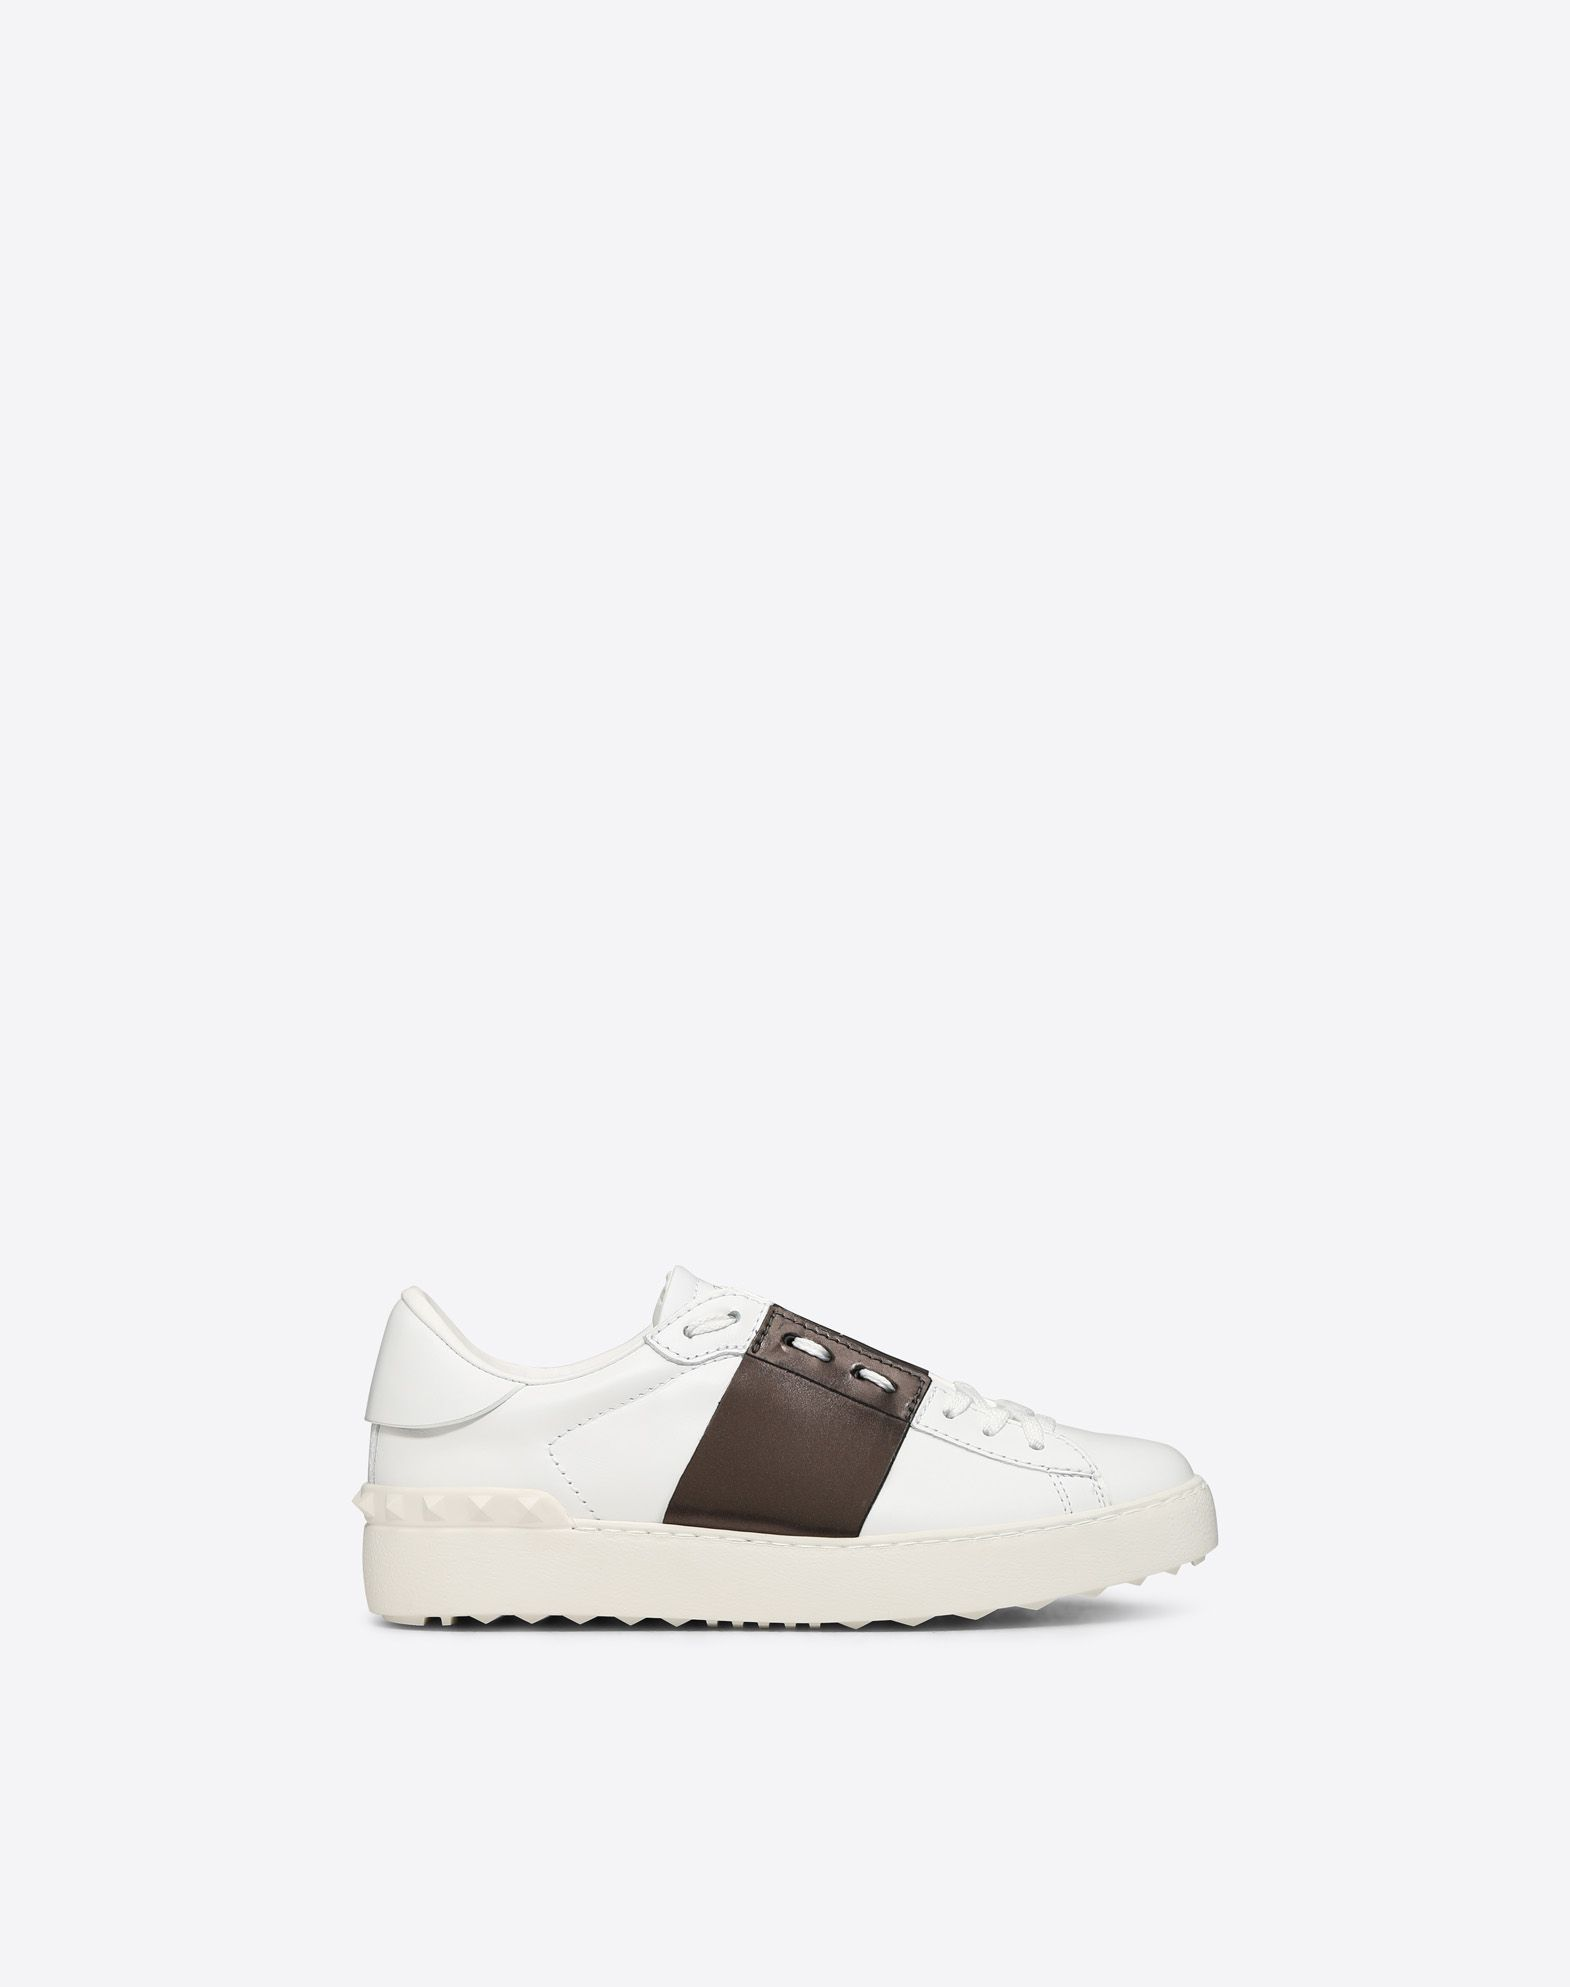 Valentino Garavani Two-tone Metallic Leather Sneakers - White Valentino Buy Cheap Visit New Sale For Sale Largest Supplier Cheap Online Sneakernews Cheap Online Outlet Browse 08V4kKK